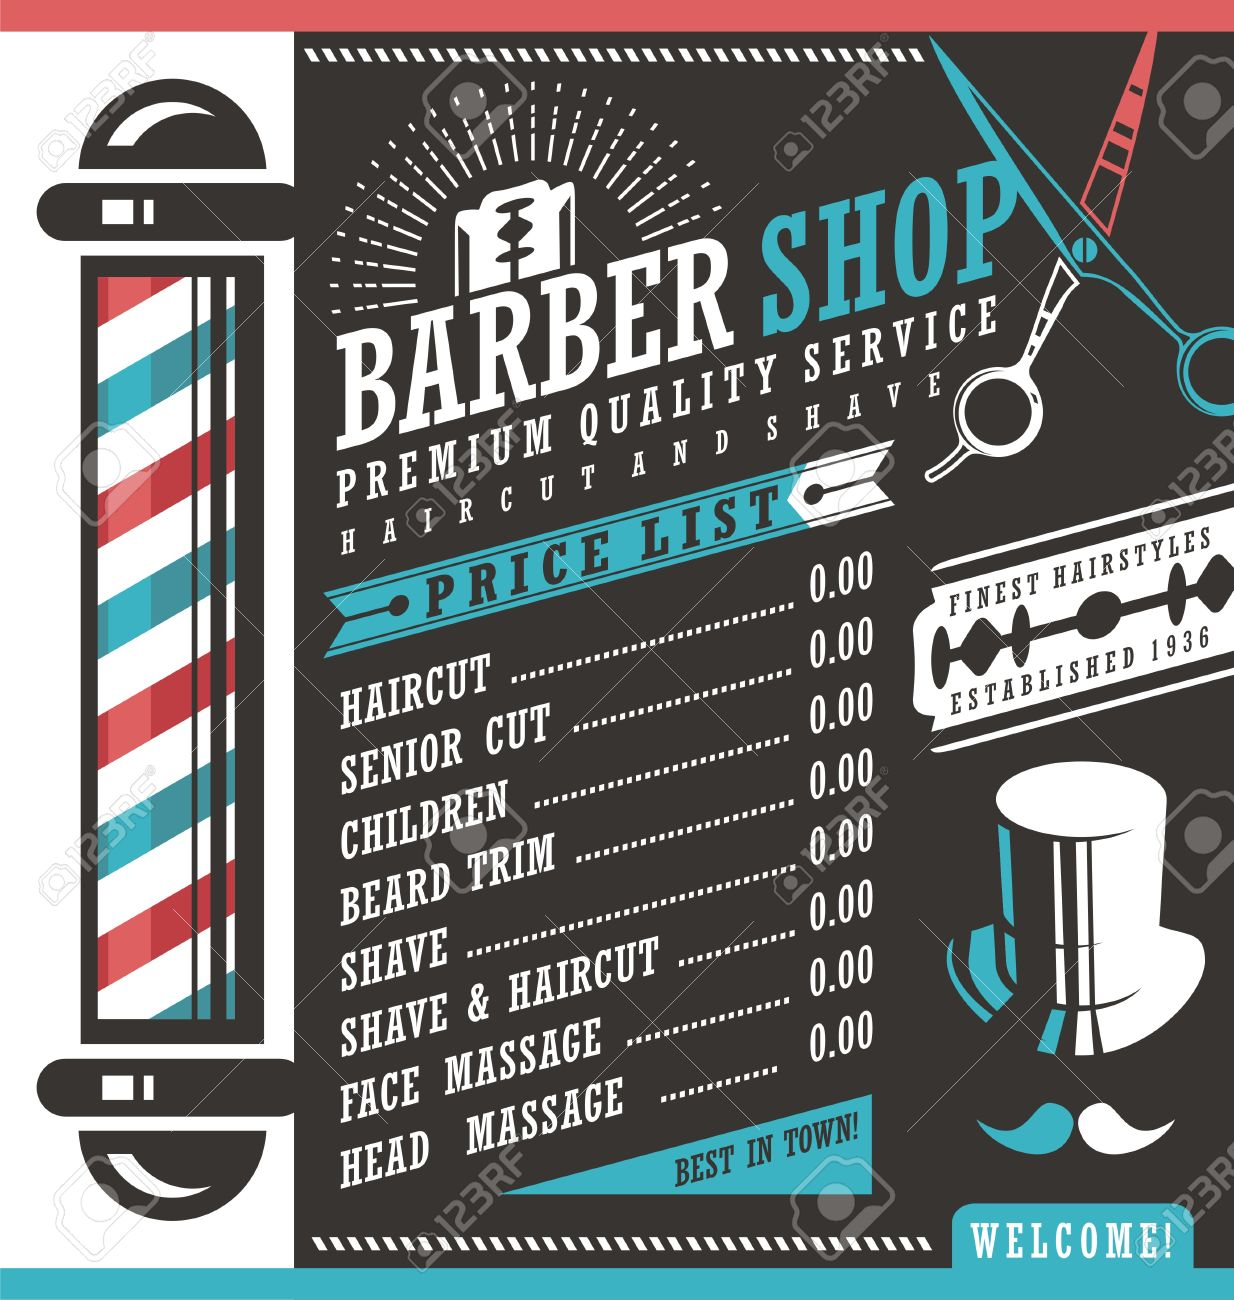 Barber Shop Vector Price List Template Royalty Free Cliparts ...